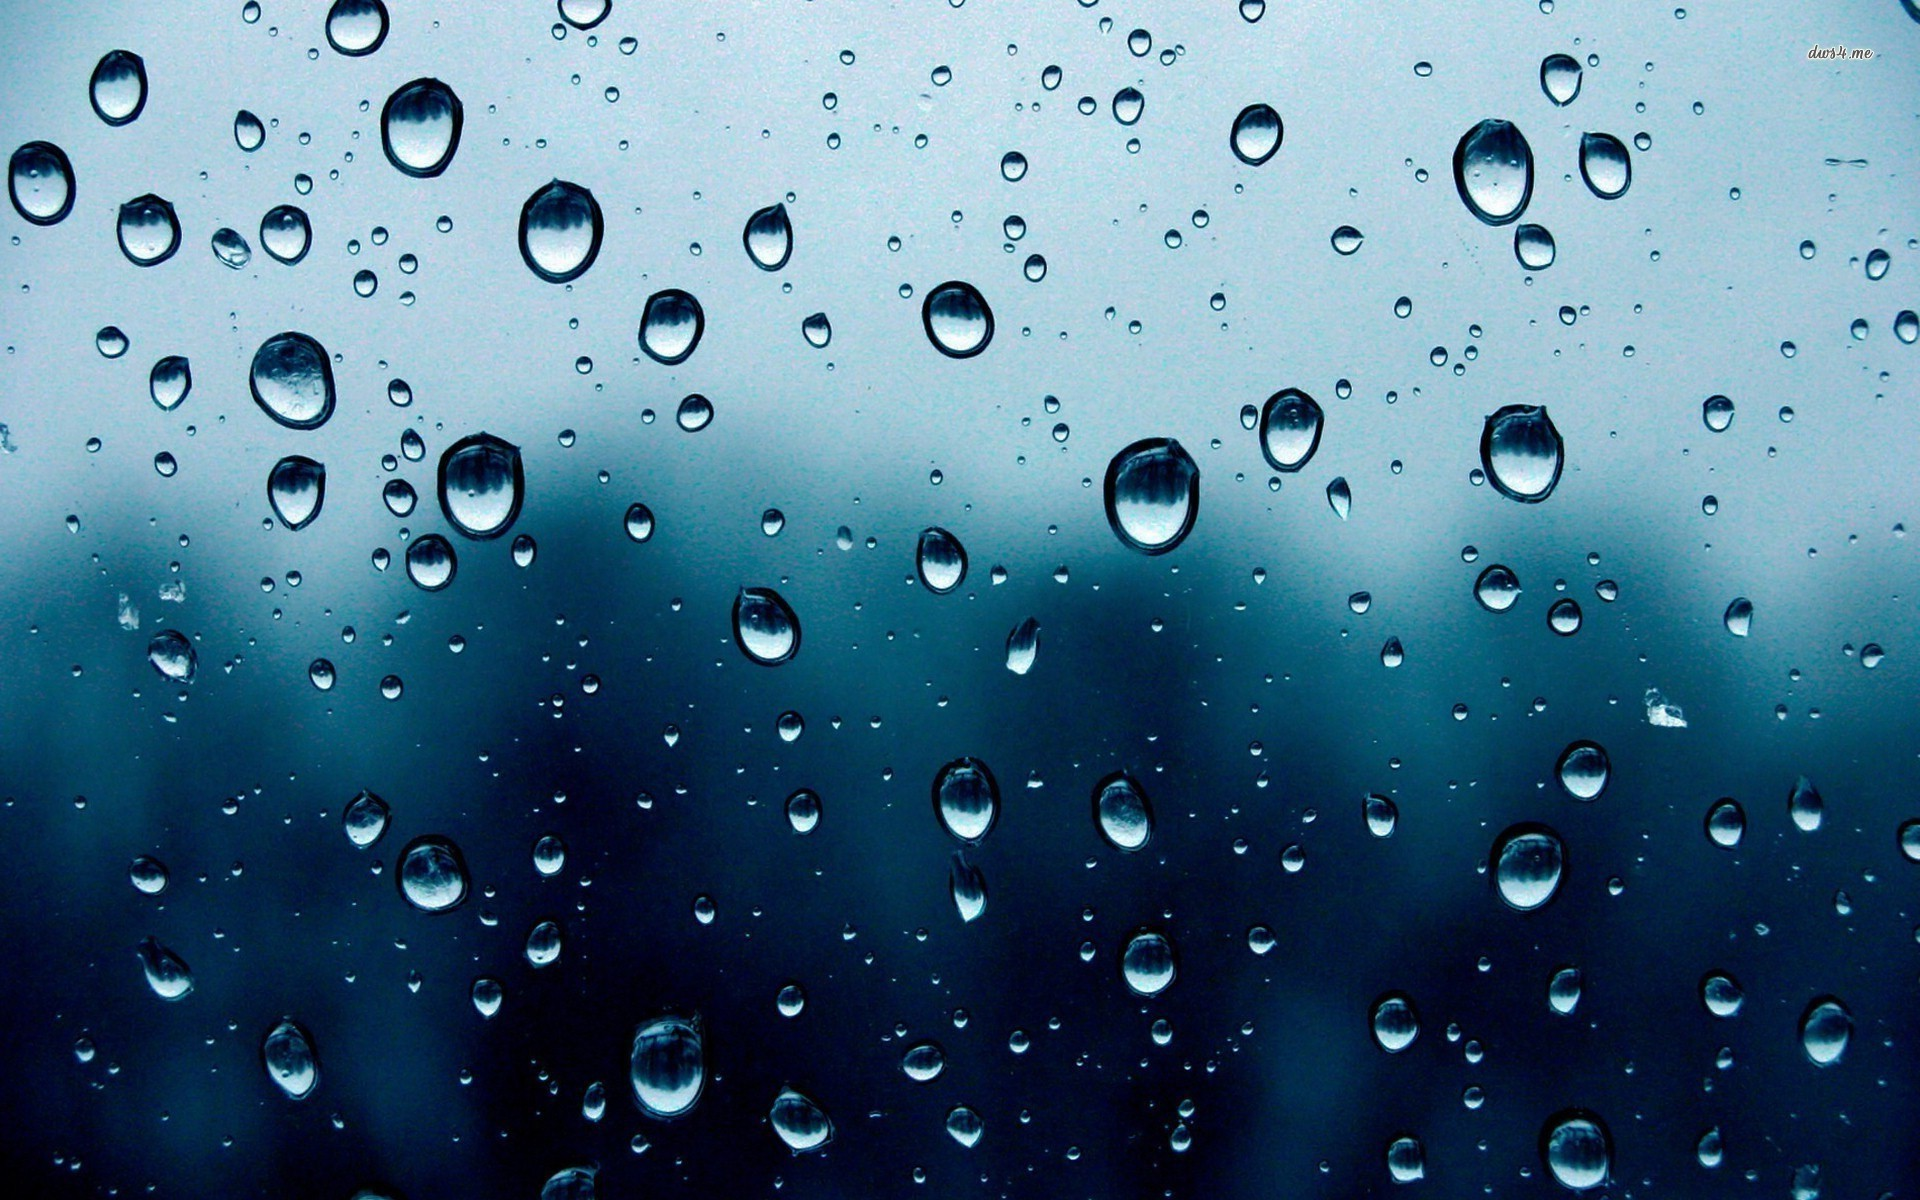 Raindrops Wallpaper.